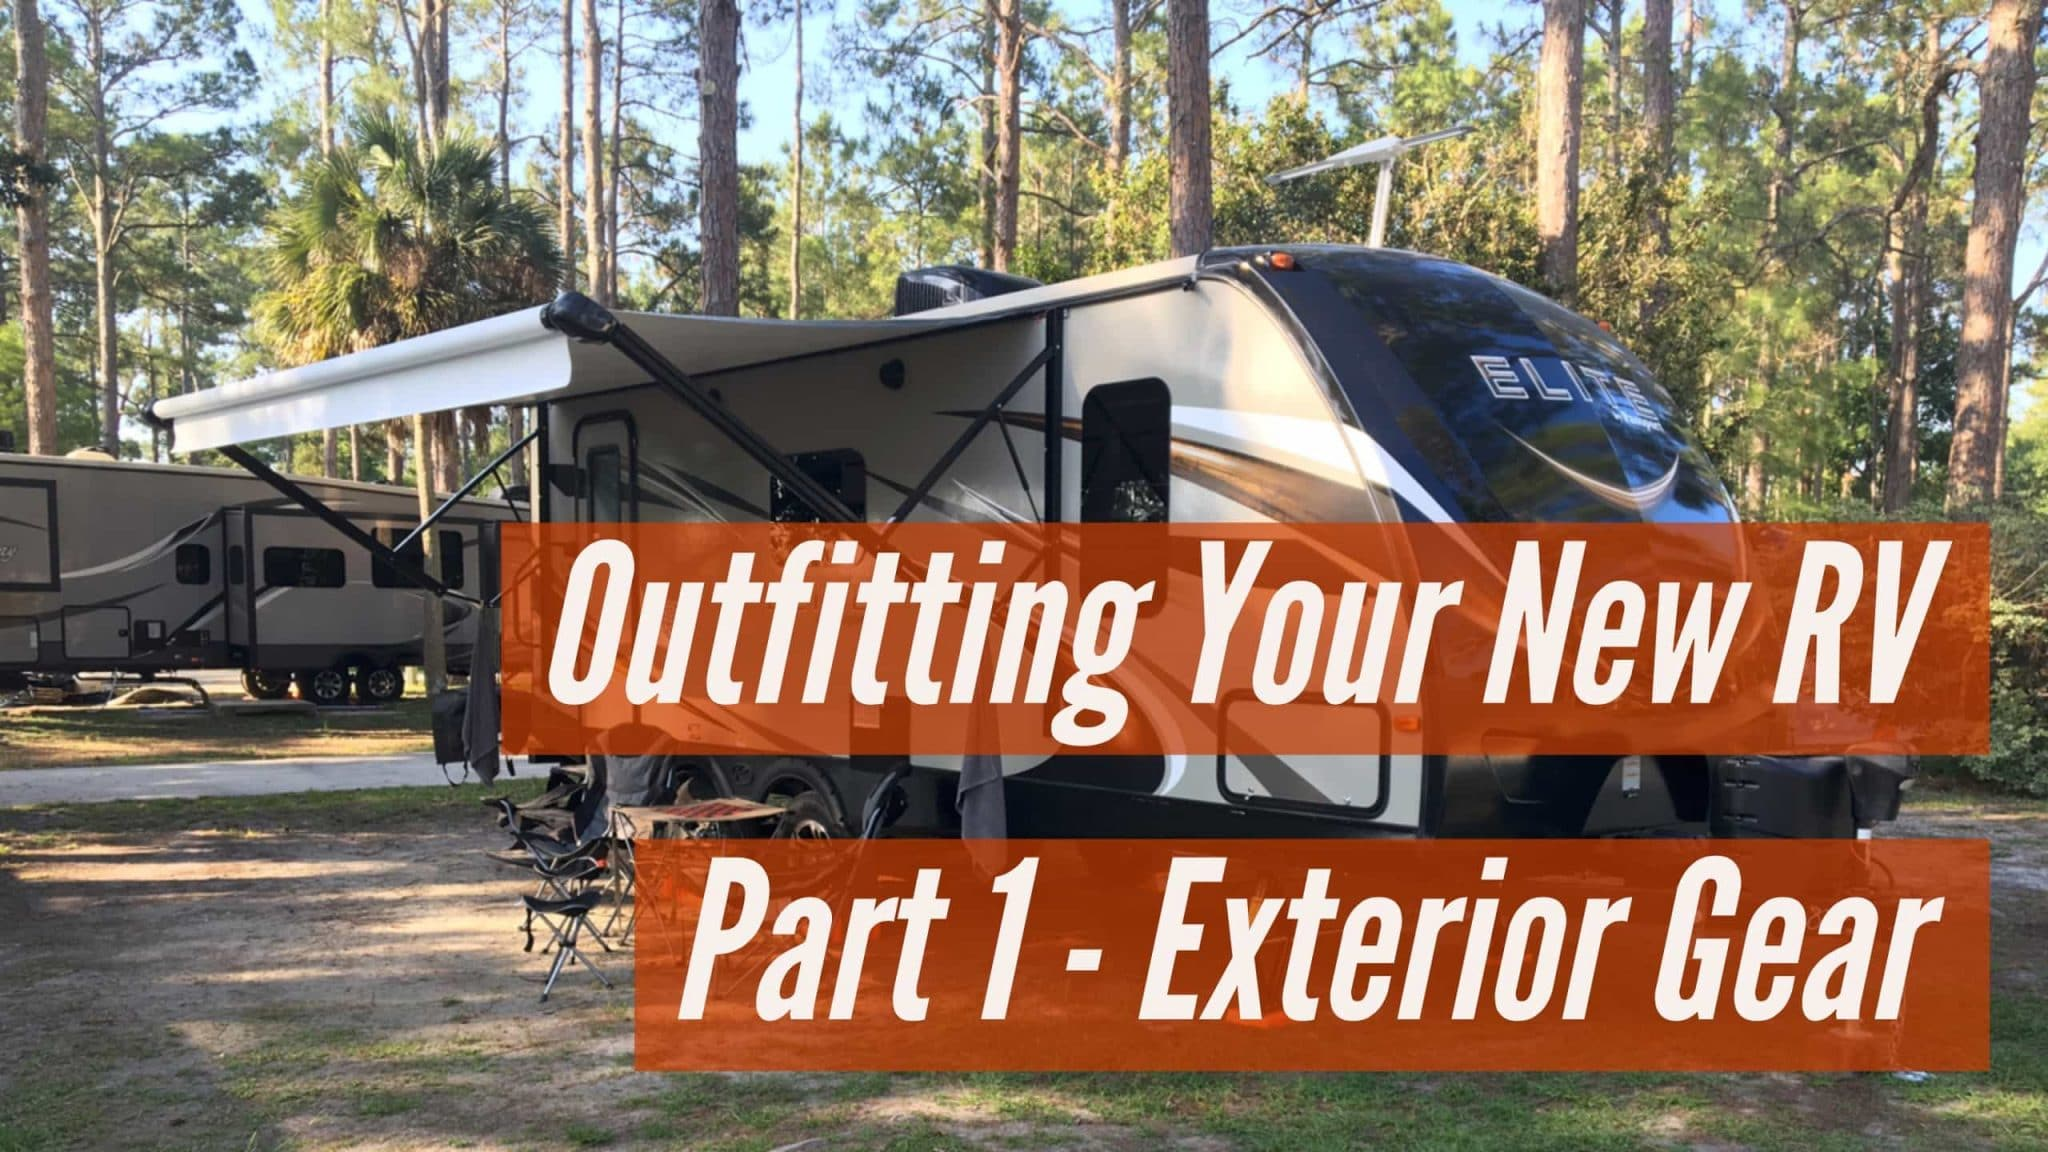 Outfitting Your New RV - Outside Gear